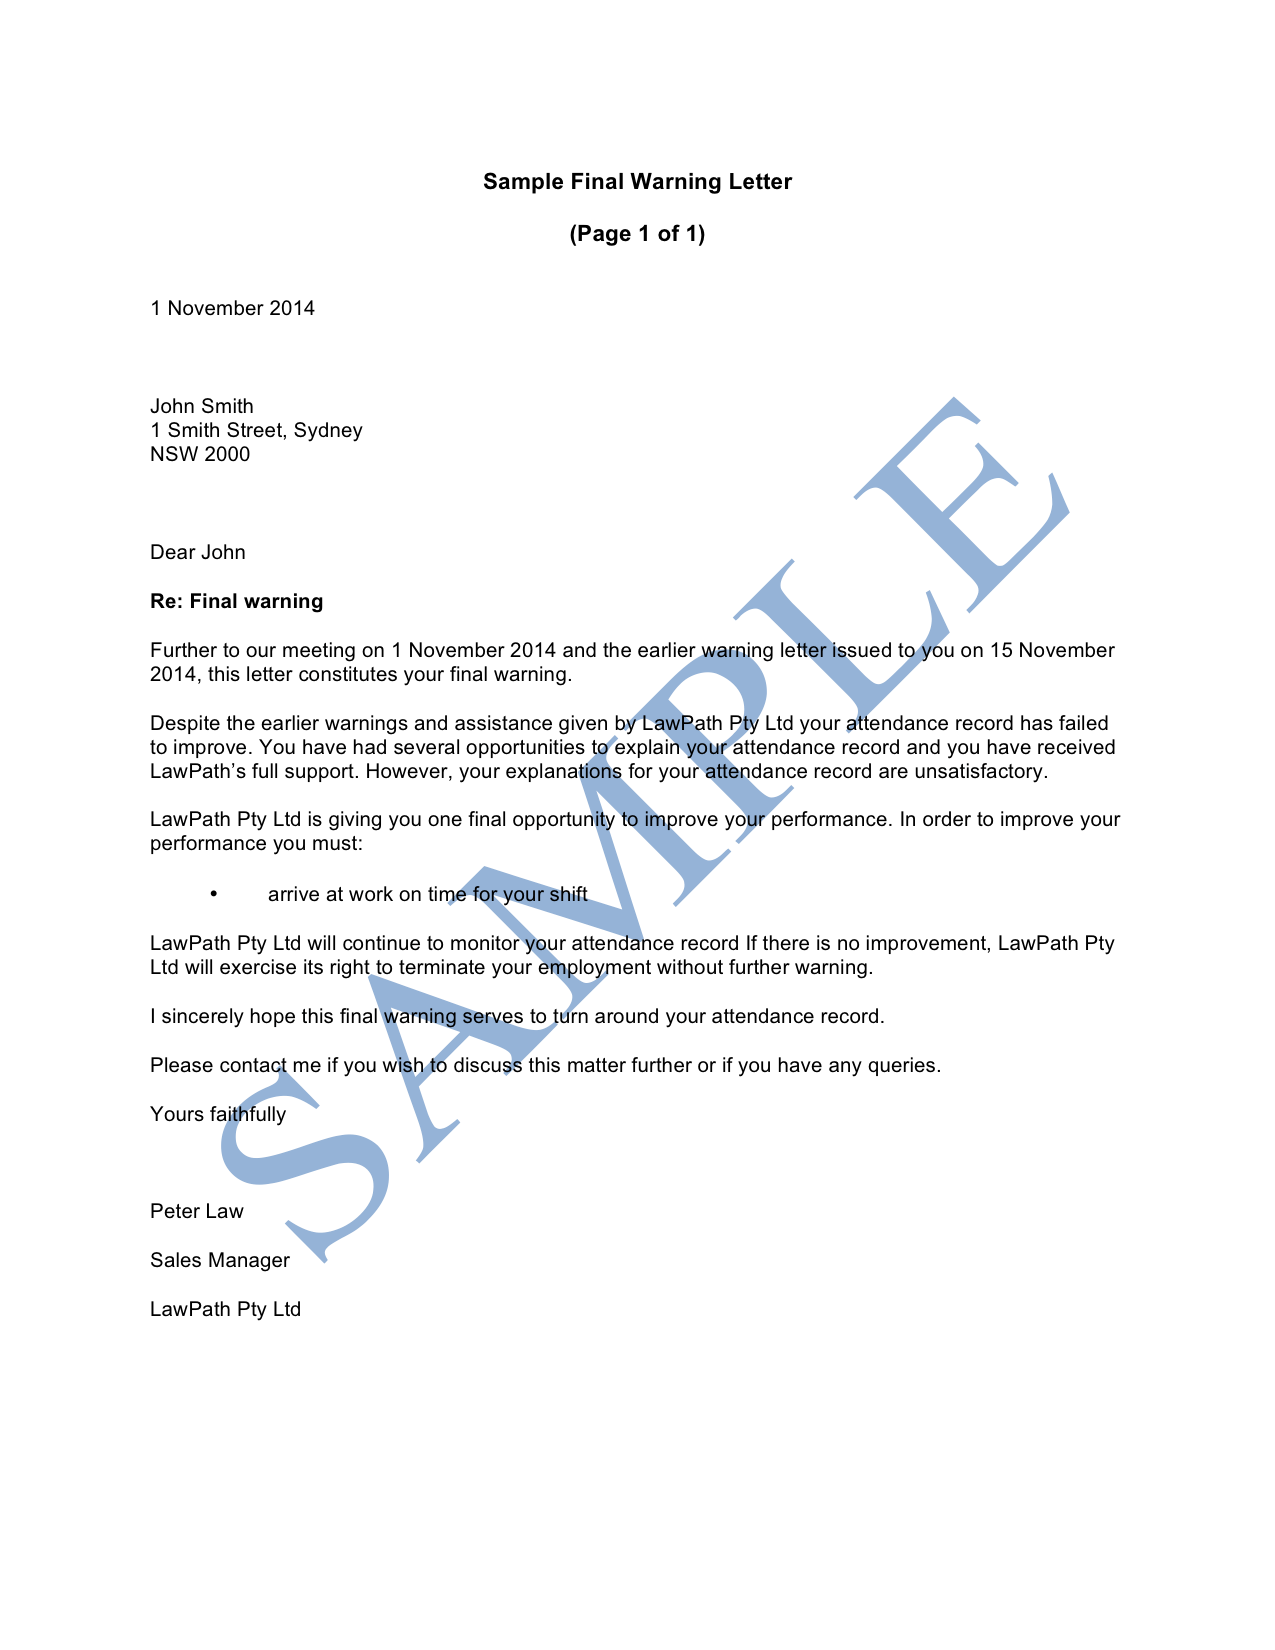 Final Warning Letter Sample LawPath – Sample Final Notice Letter